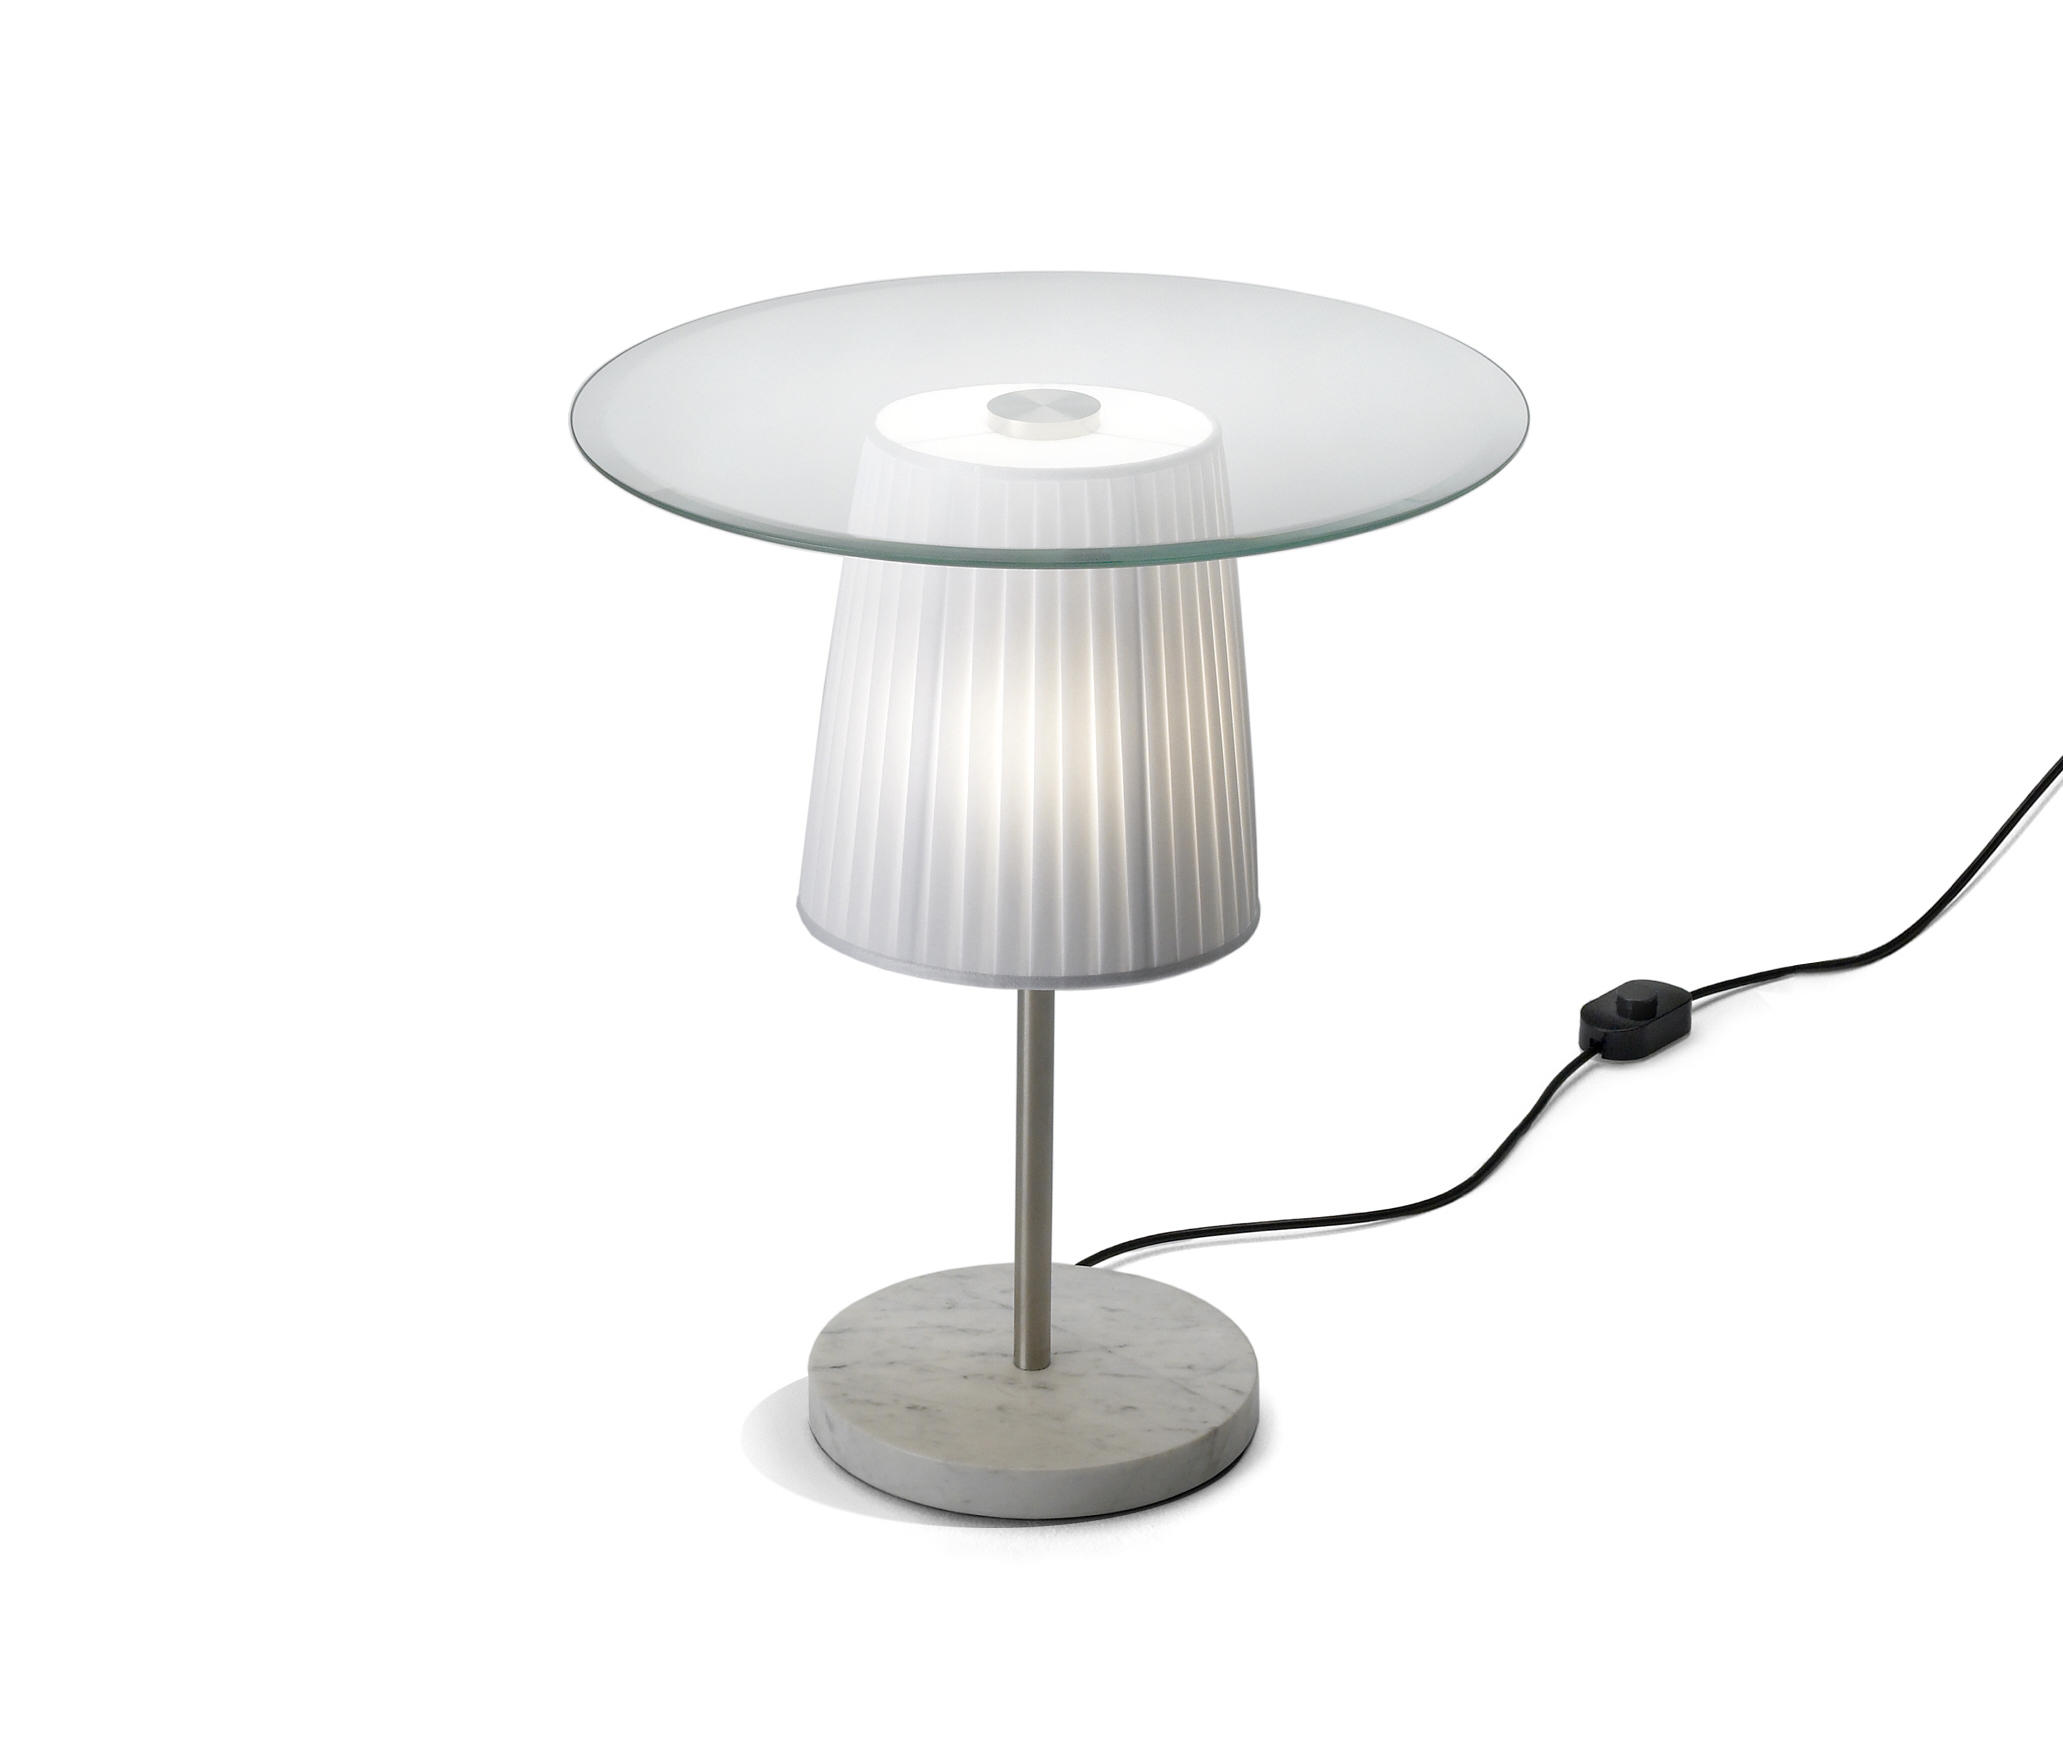 Table lamp side tables from anthologie quartett architonic table lamp by anthologie quartett side tables aloadofball Gallery